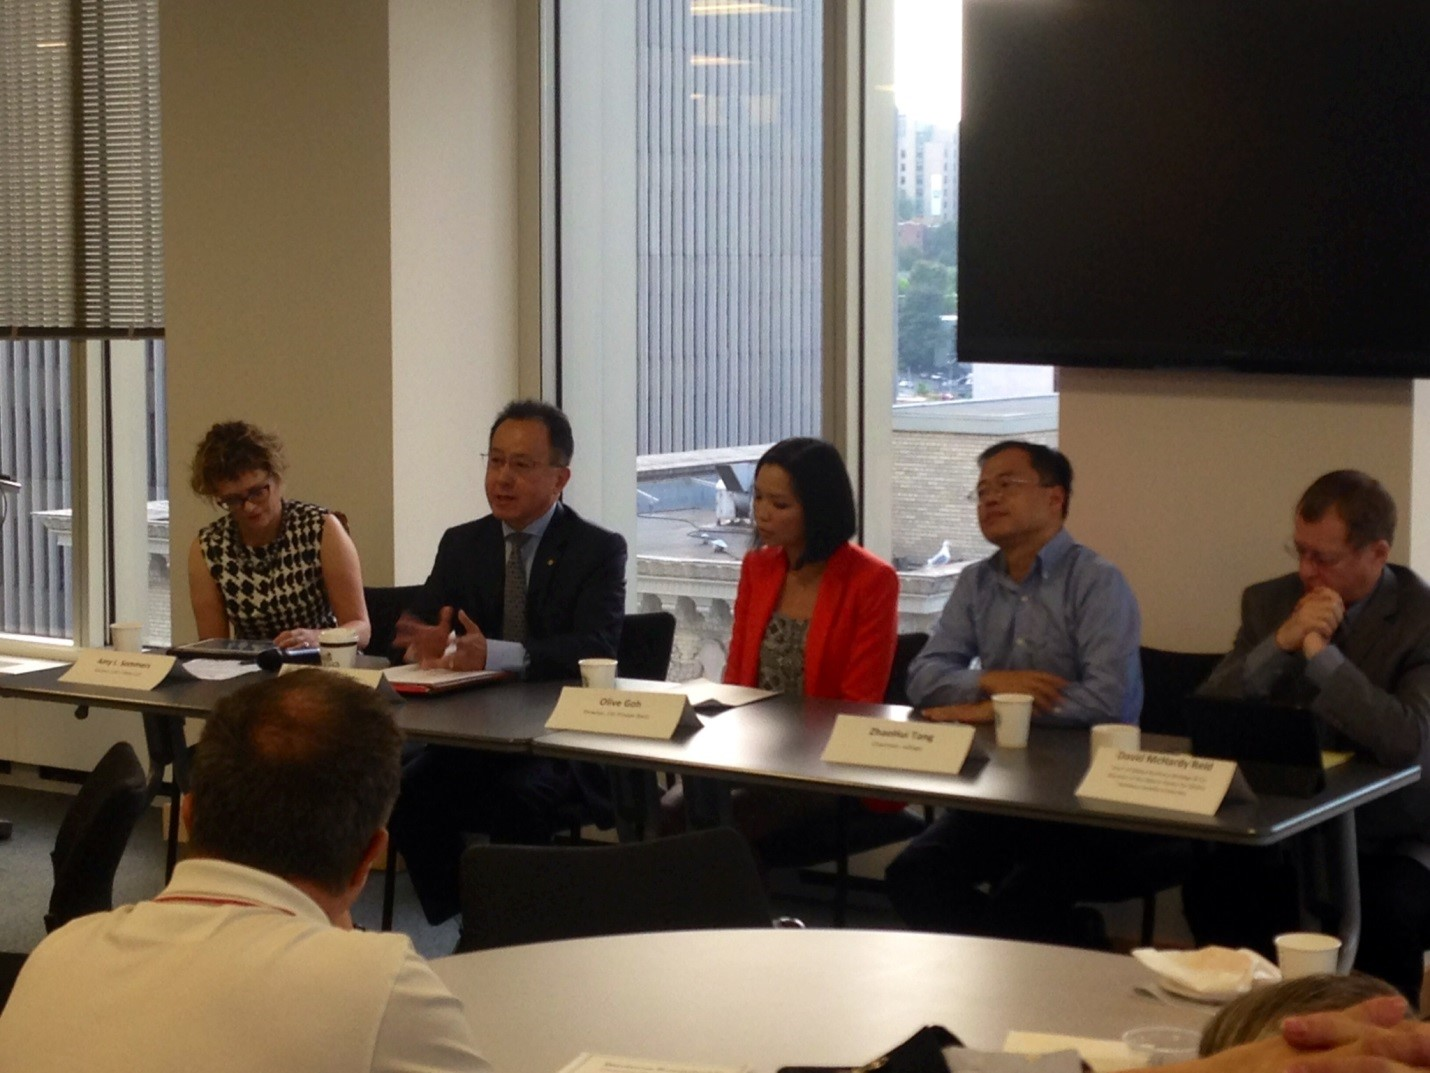 Above & Below: More than three dozen thought leaders converged at a roundtable discussion last week with the Washington State China Relations Council to discuss the likely effects of recent market turbulence in China